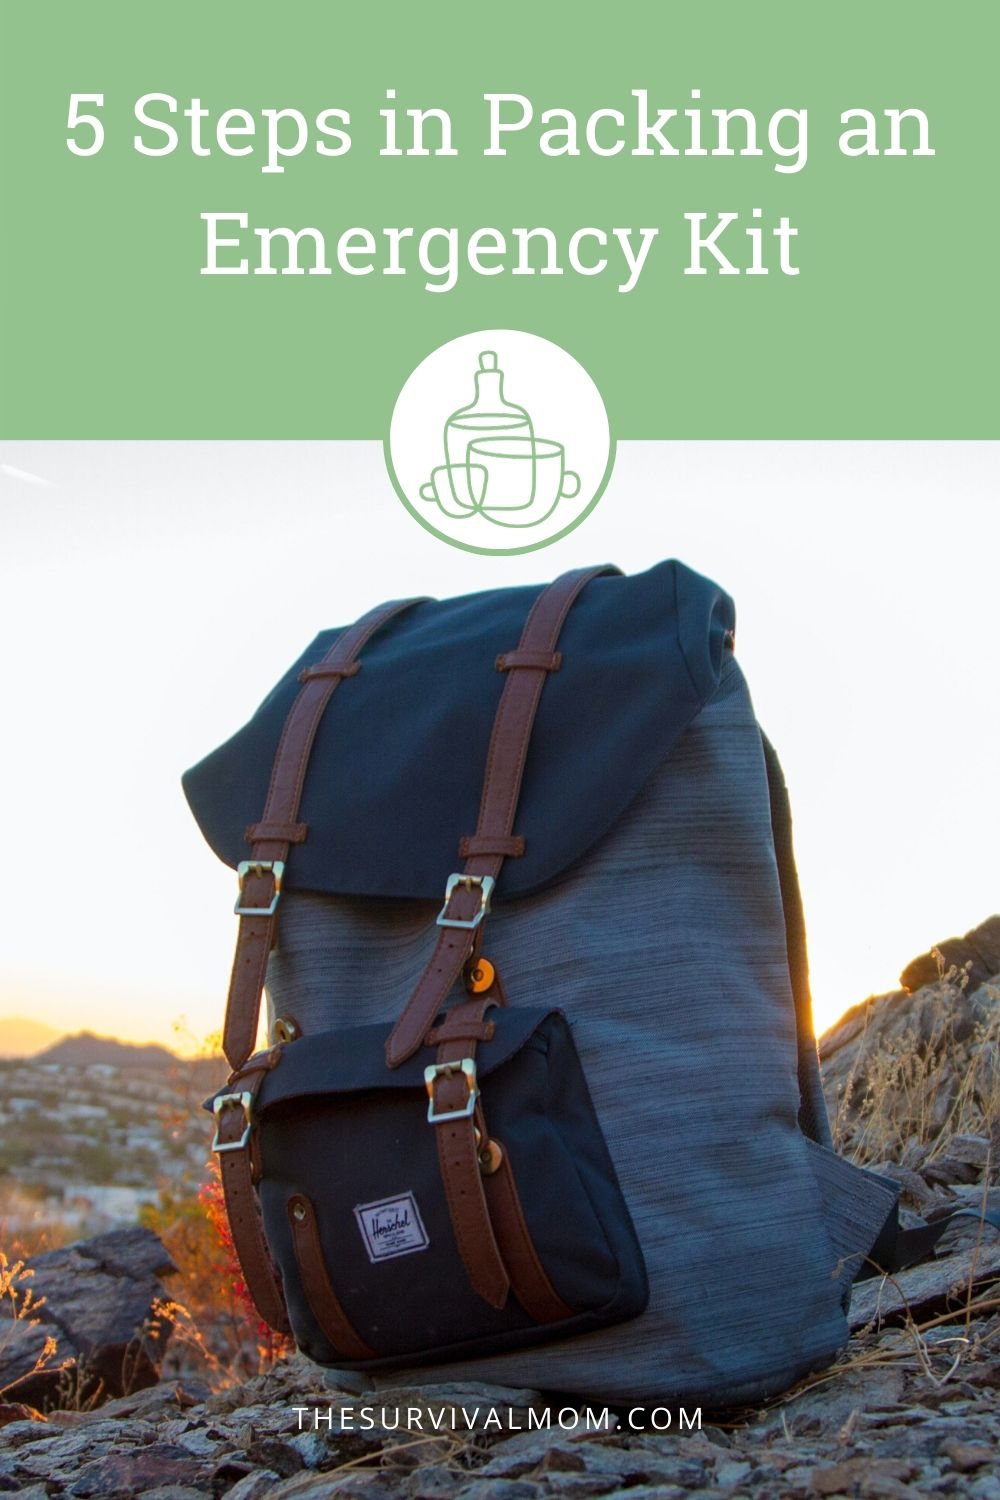 5 Steps in Packing an Emergency Kit via The Survival Mom